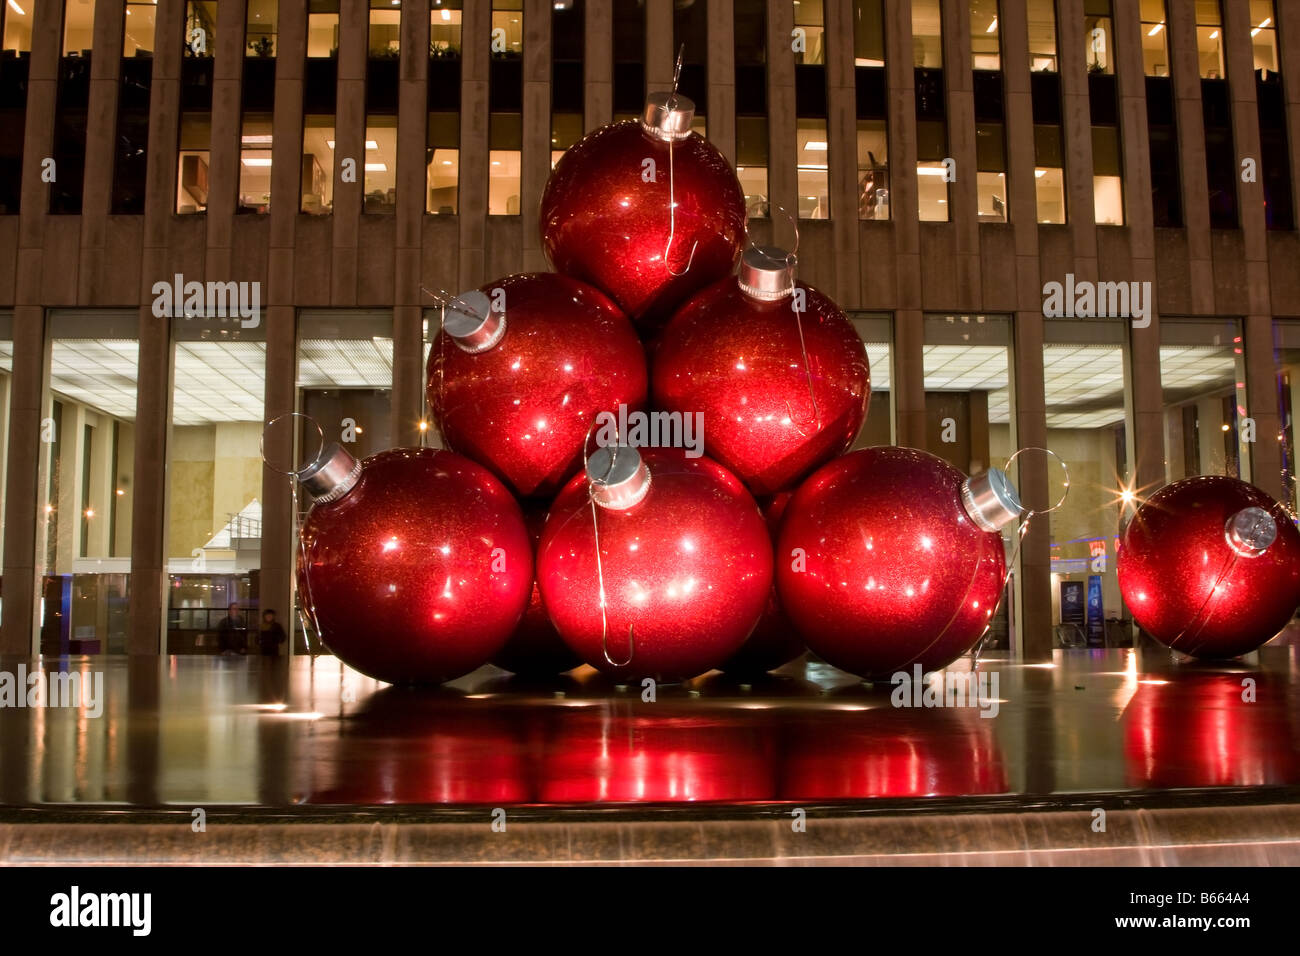 Big Red Balls As Ornaments For The Christmas Tree As An Art Exhibit On 6th  Avenue In New York City